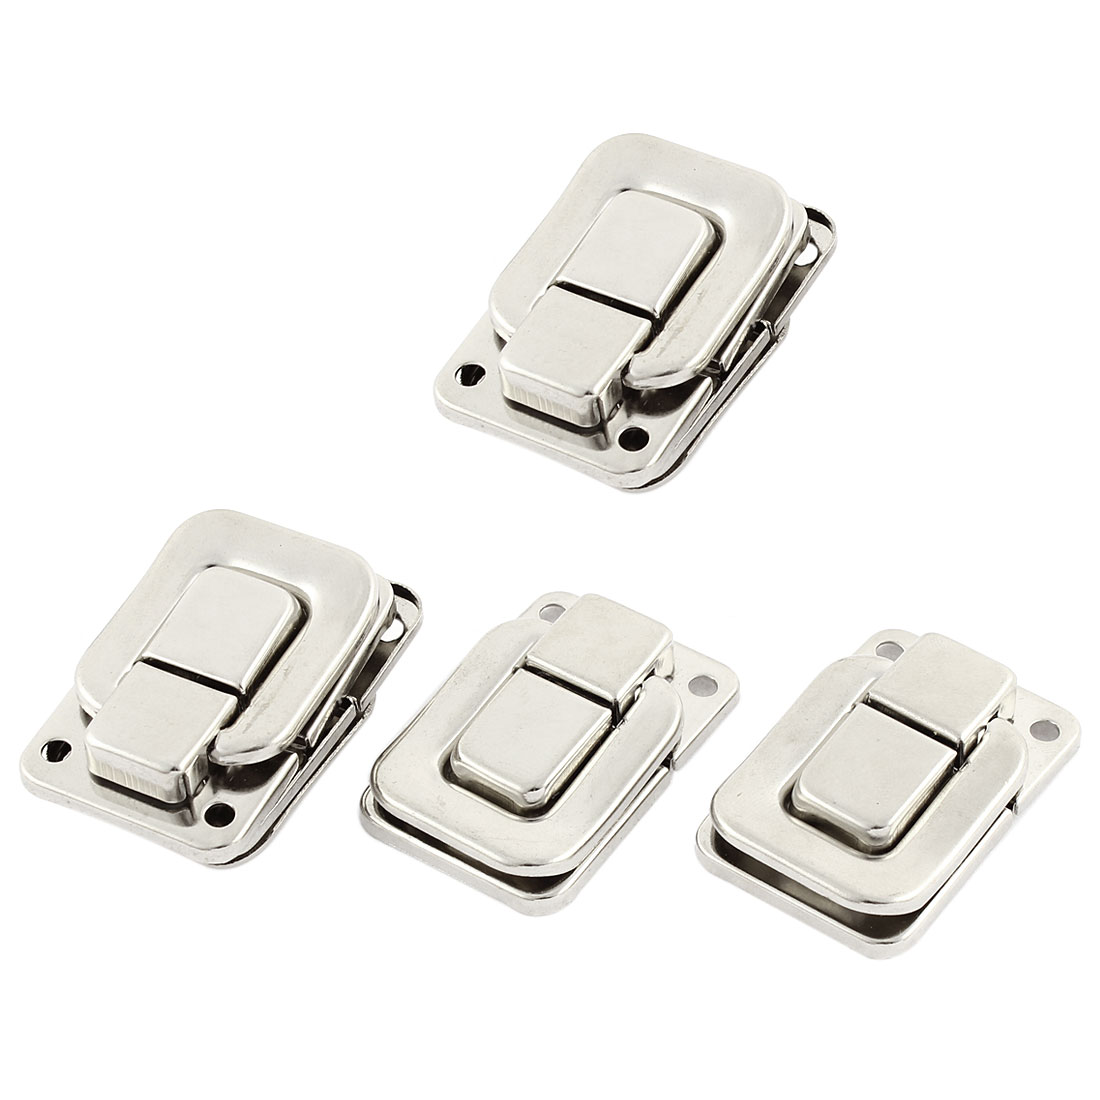 Stainless Steel Spring Draw Toggle Latch for Chest Box Case Suitcase 4Pcs